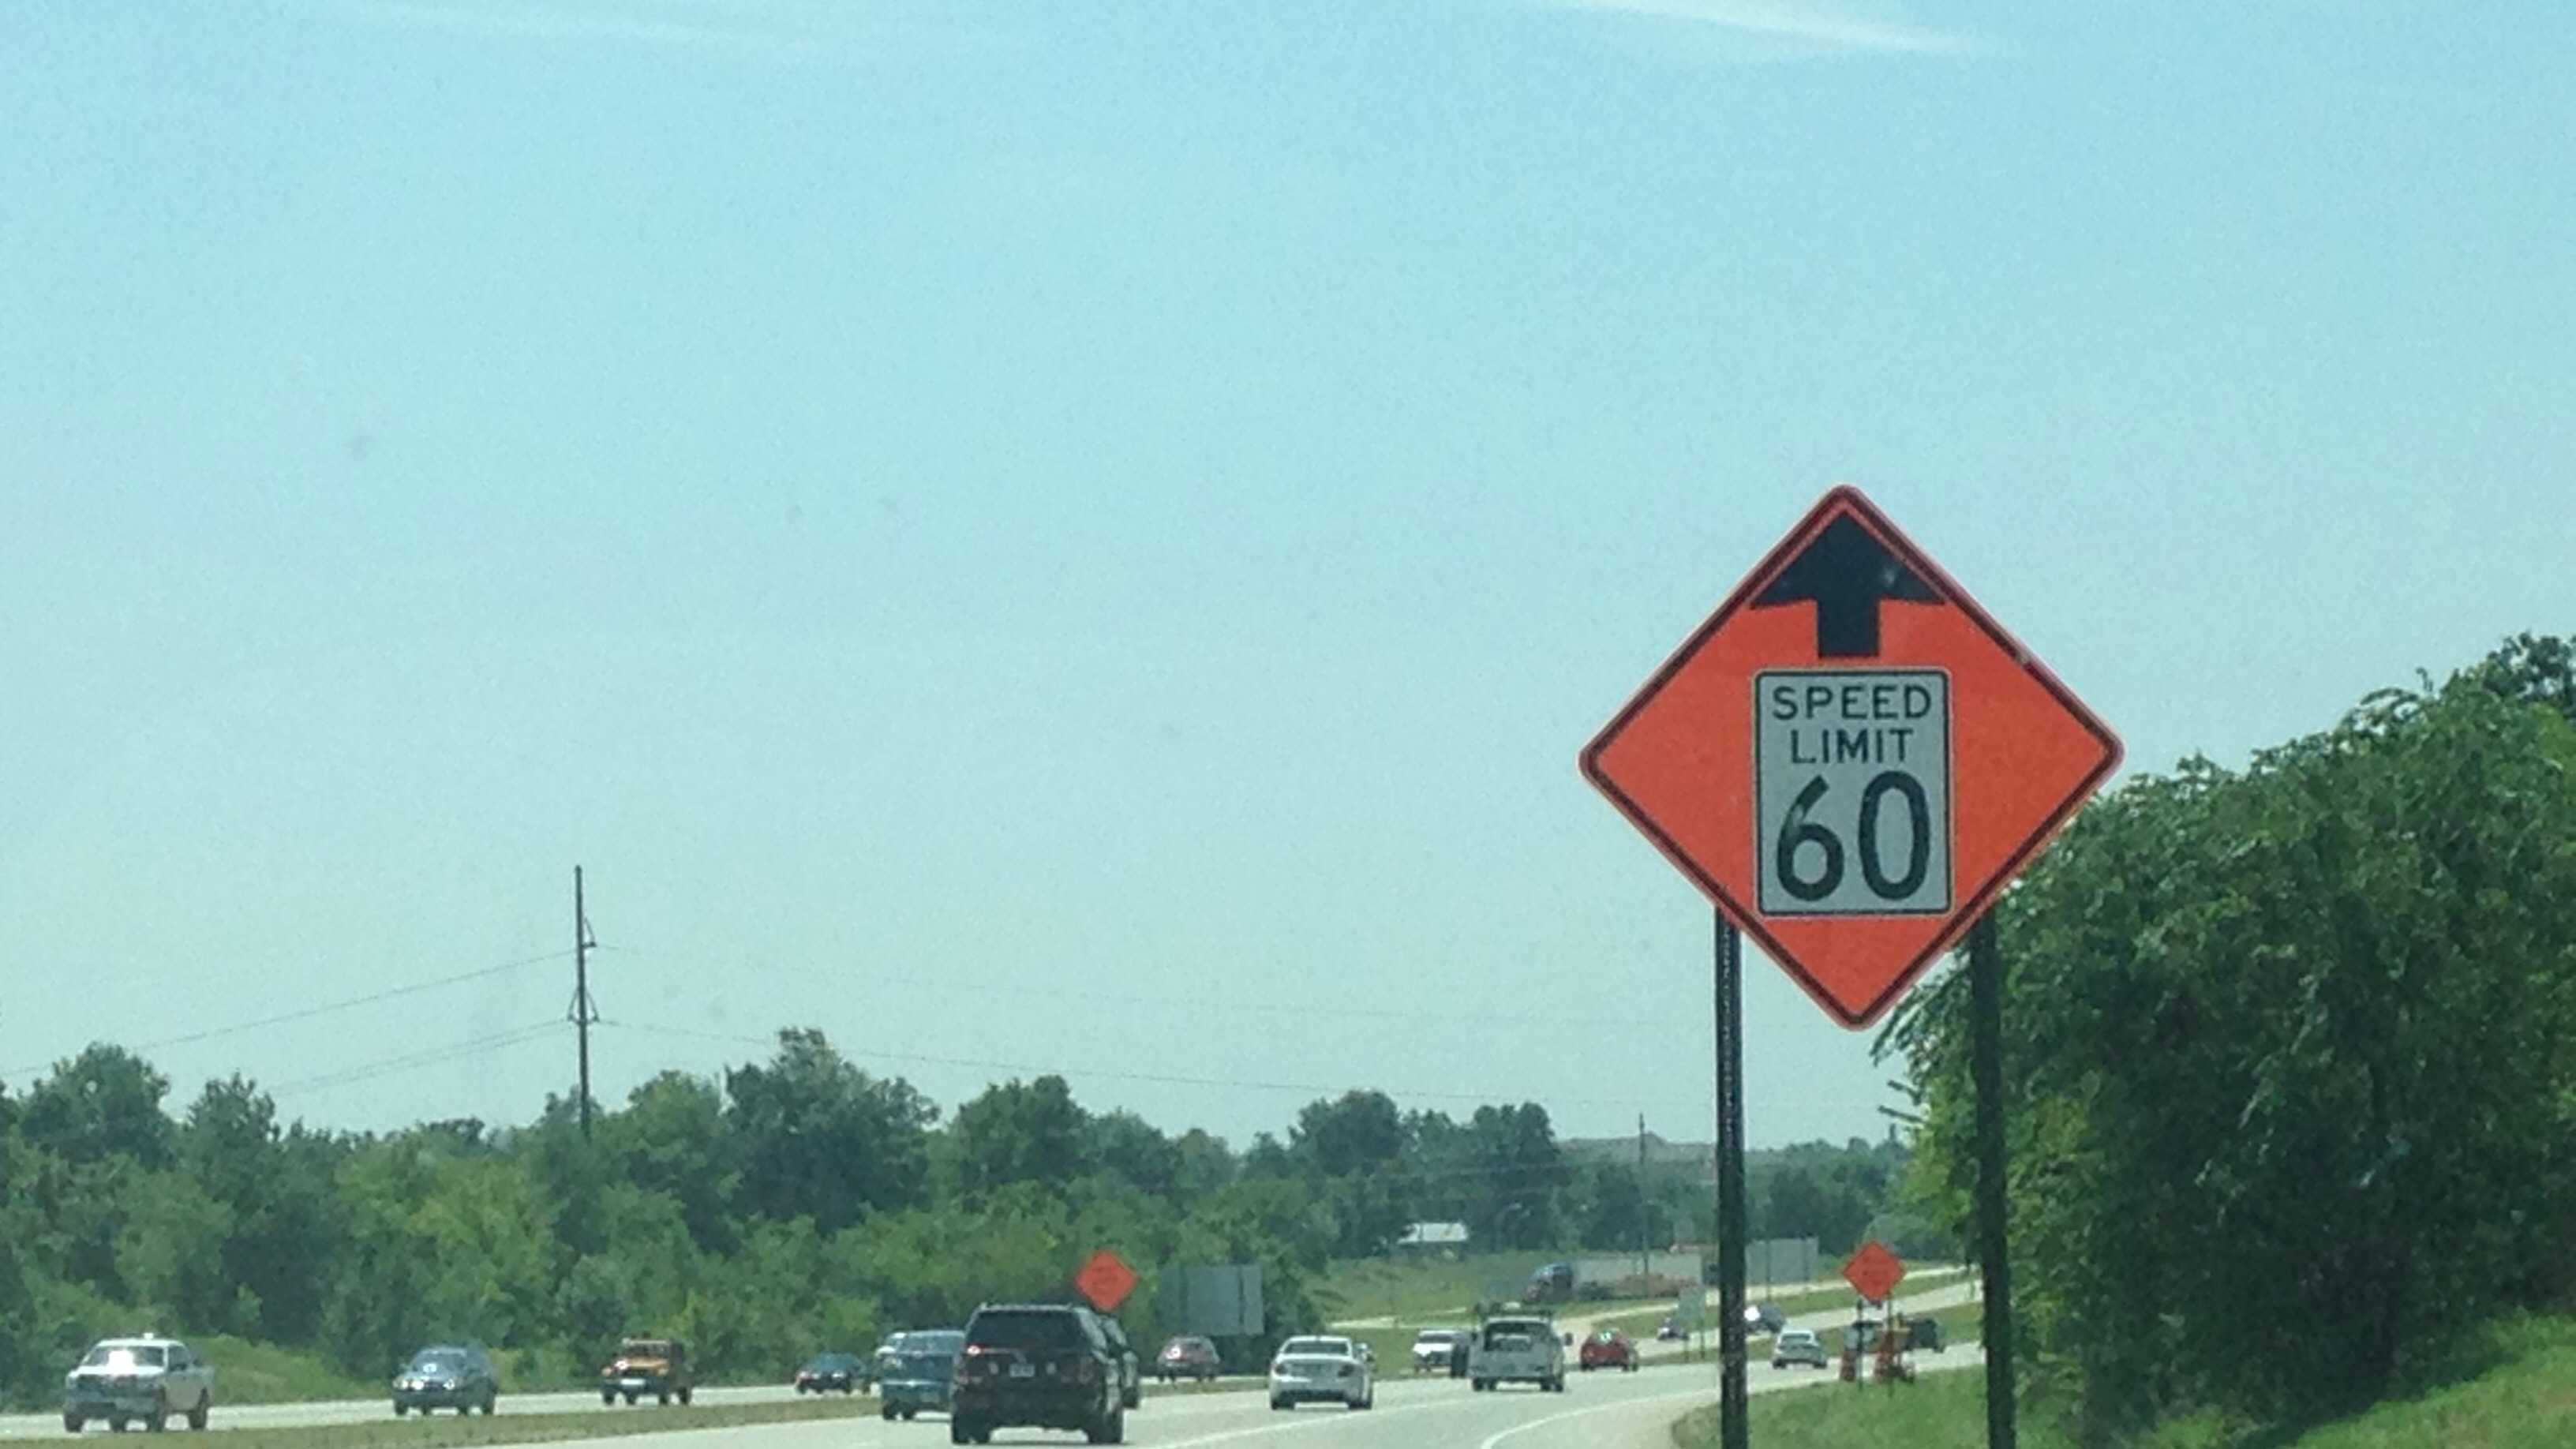 The speed limit on I-49 has been reduced to 60 miles per hour between Highway 71B Interchange in Fayetteville and ending near the Hwy 412 Interchange in Springdale because of construction with the lane widening project.